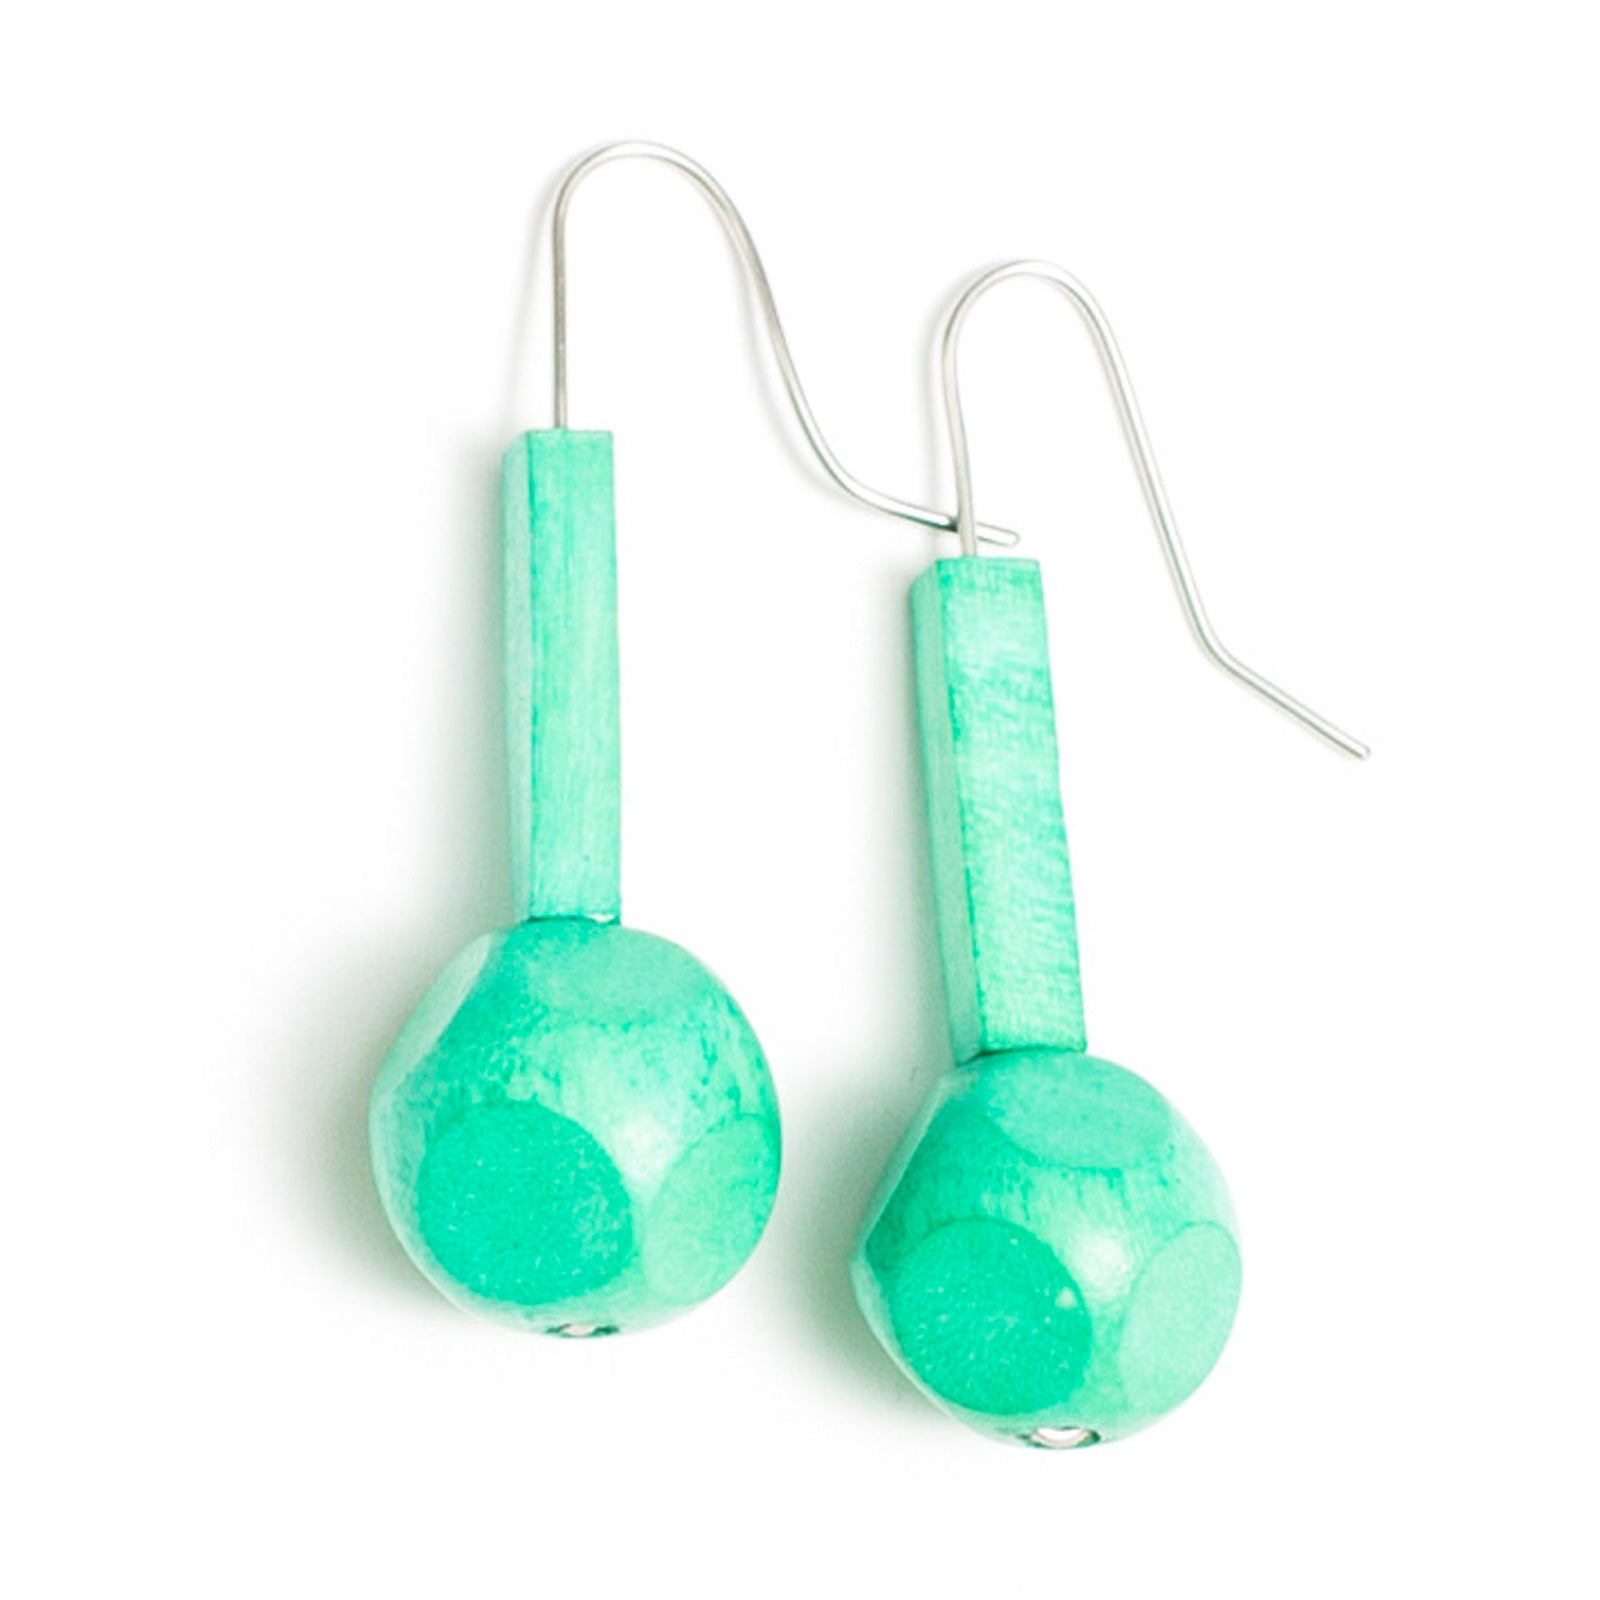 Faceted Ball and Tube earring